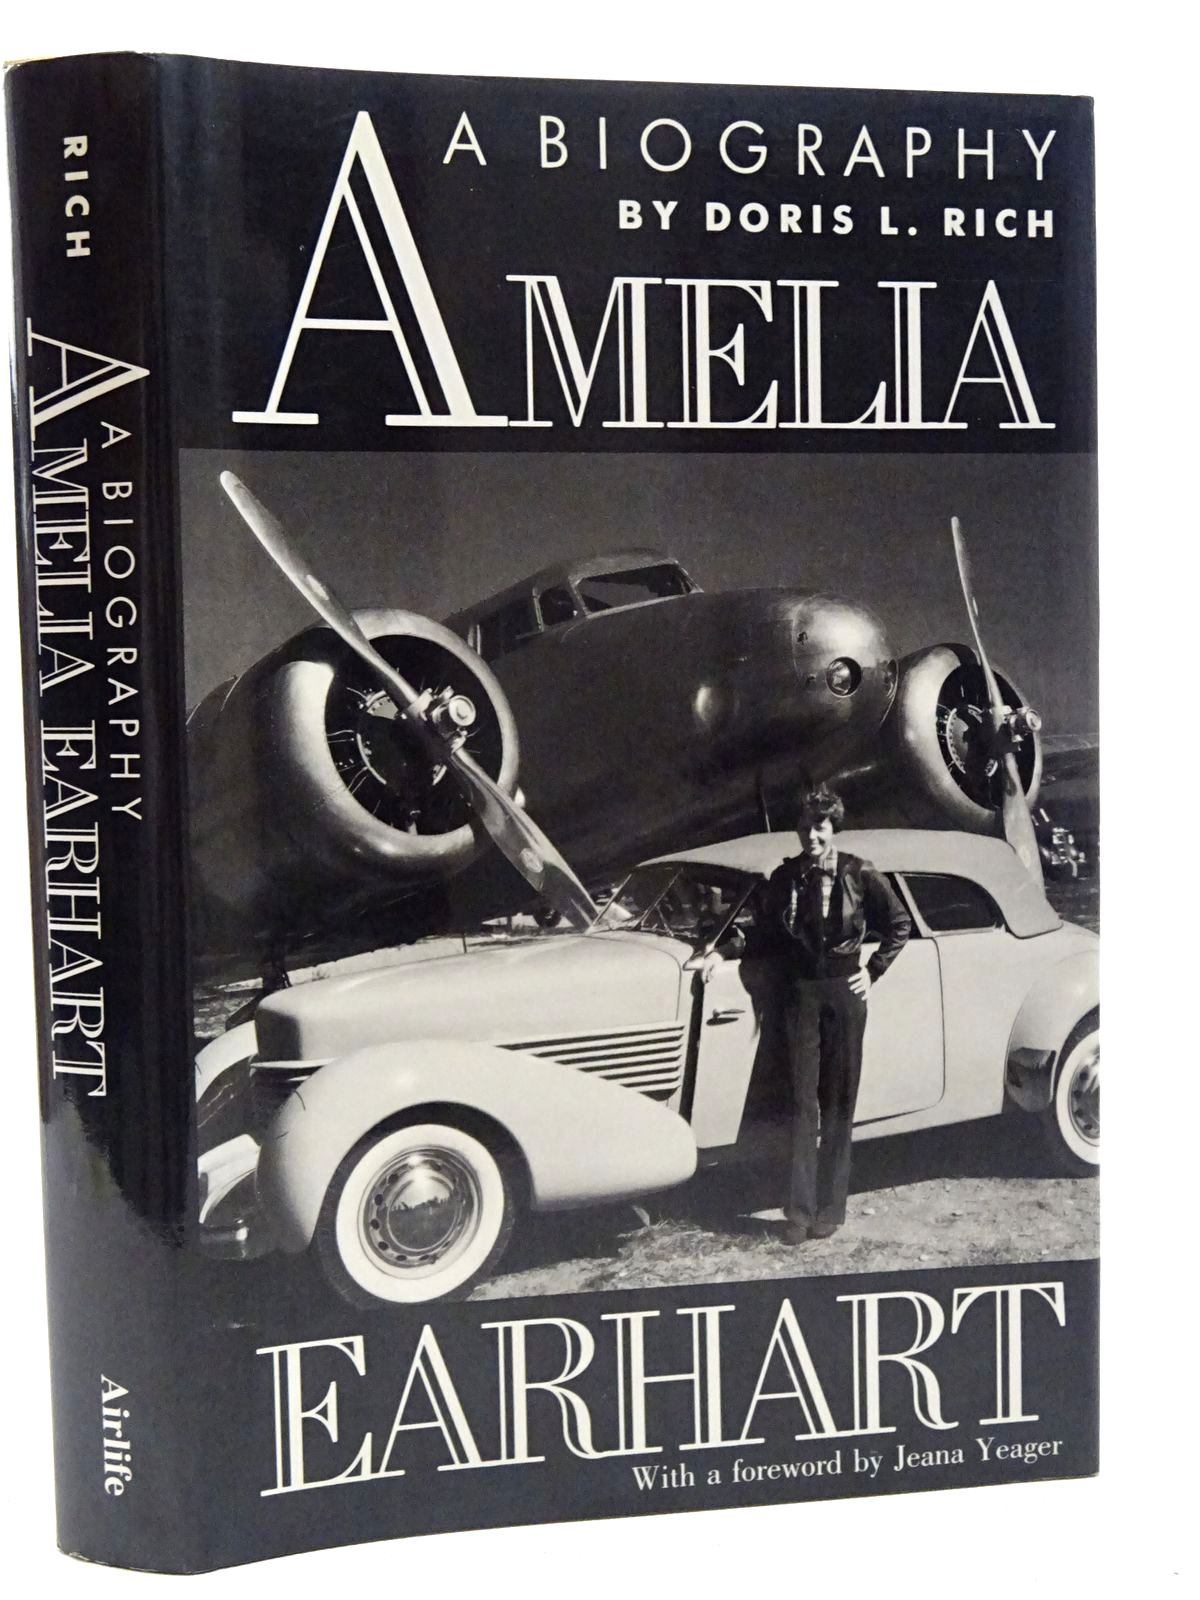 Photo of AMELIA EARHART A BIOGRAPHY written by Rich, Doris L. published by Airlife (STOCK CODE: 2124819)  for sale by Stella & Rose's Books